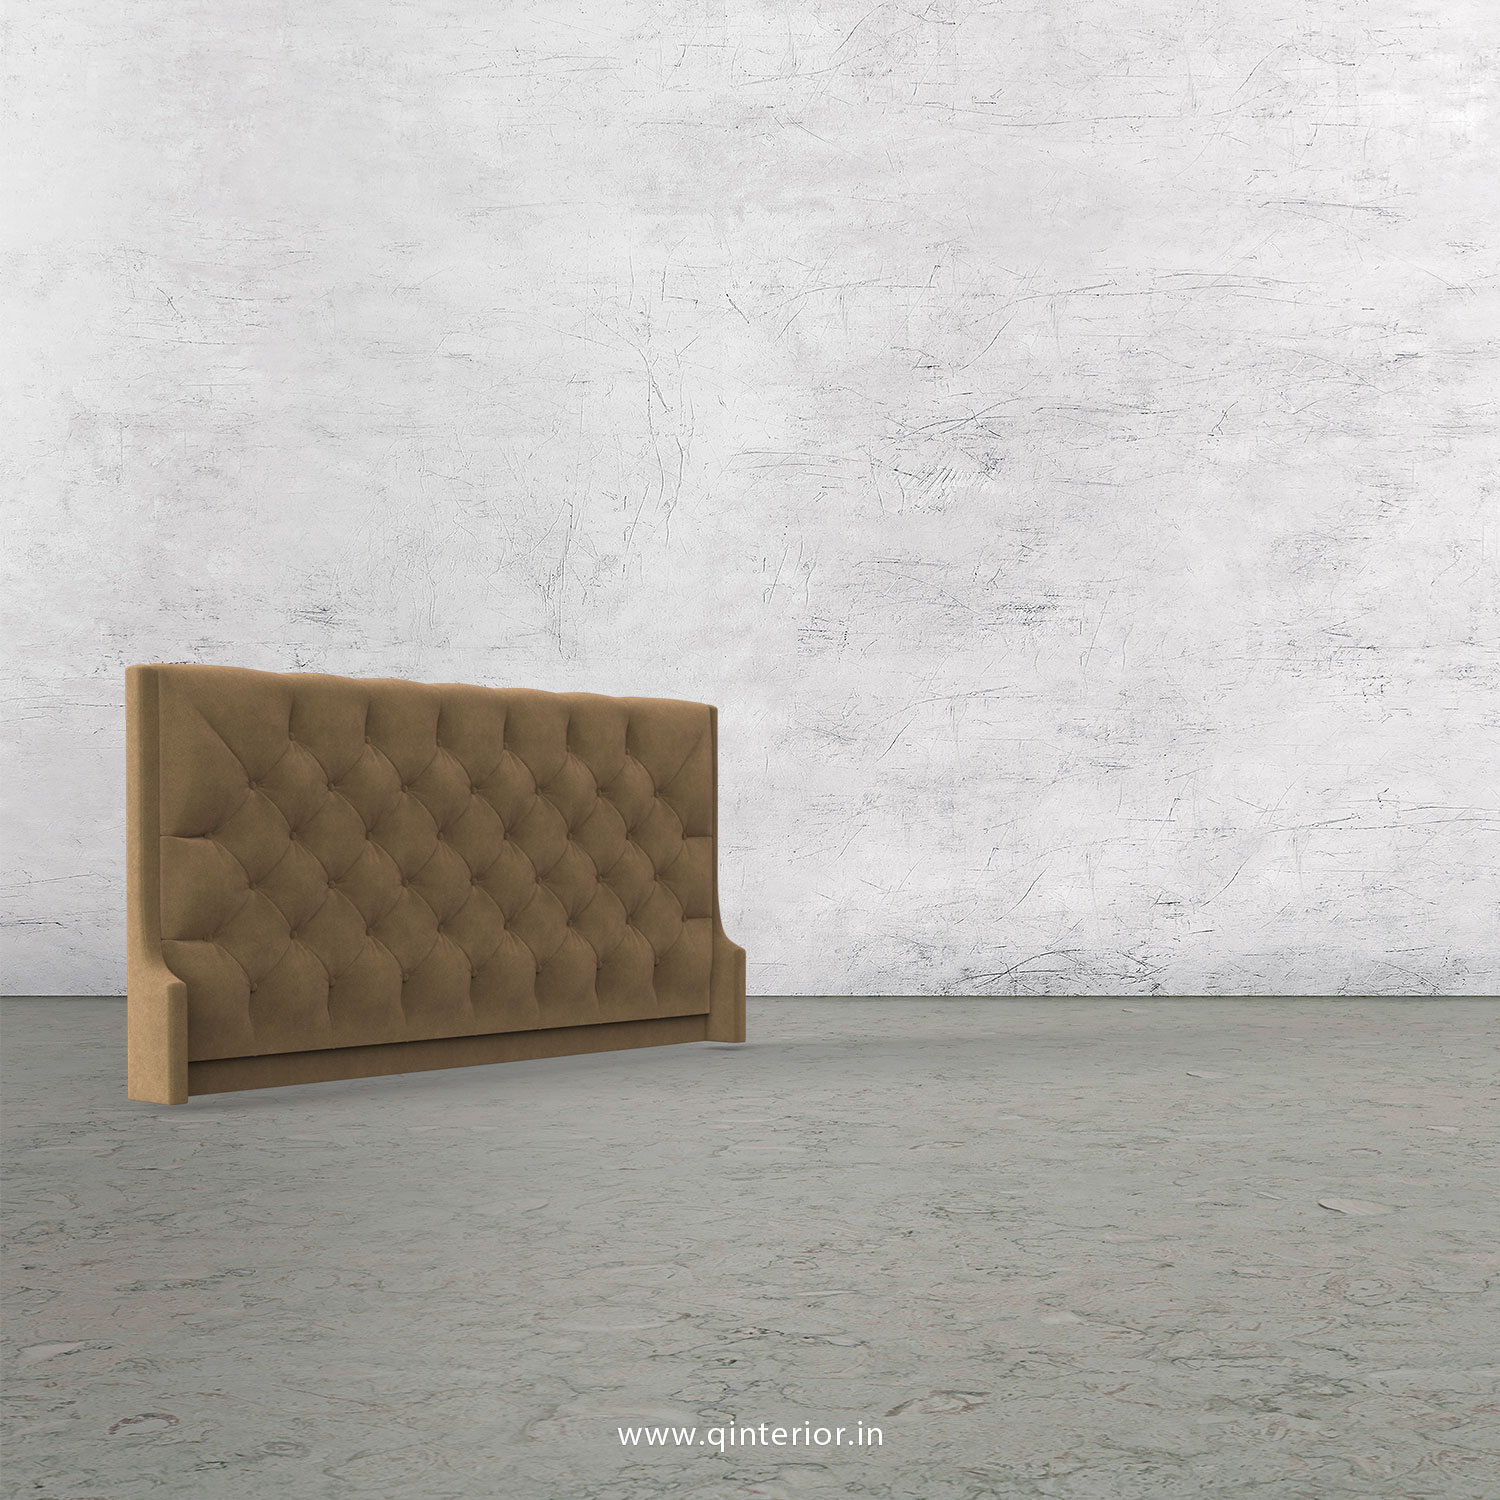 Scorpius Bed Headboard In Velvet Fabric Bhb002 Vl09 In Walnut Brown Color By Q Interior